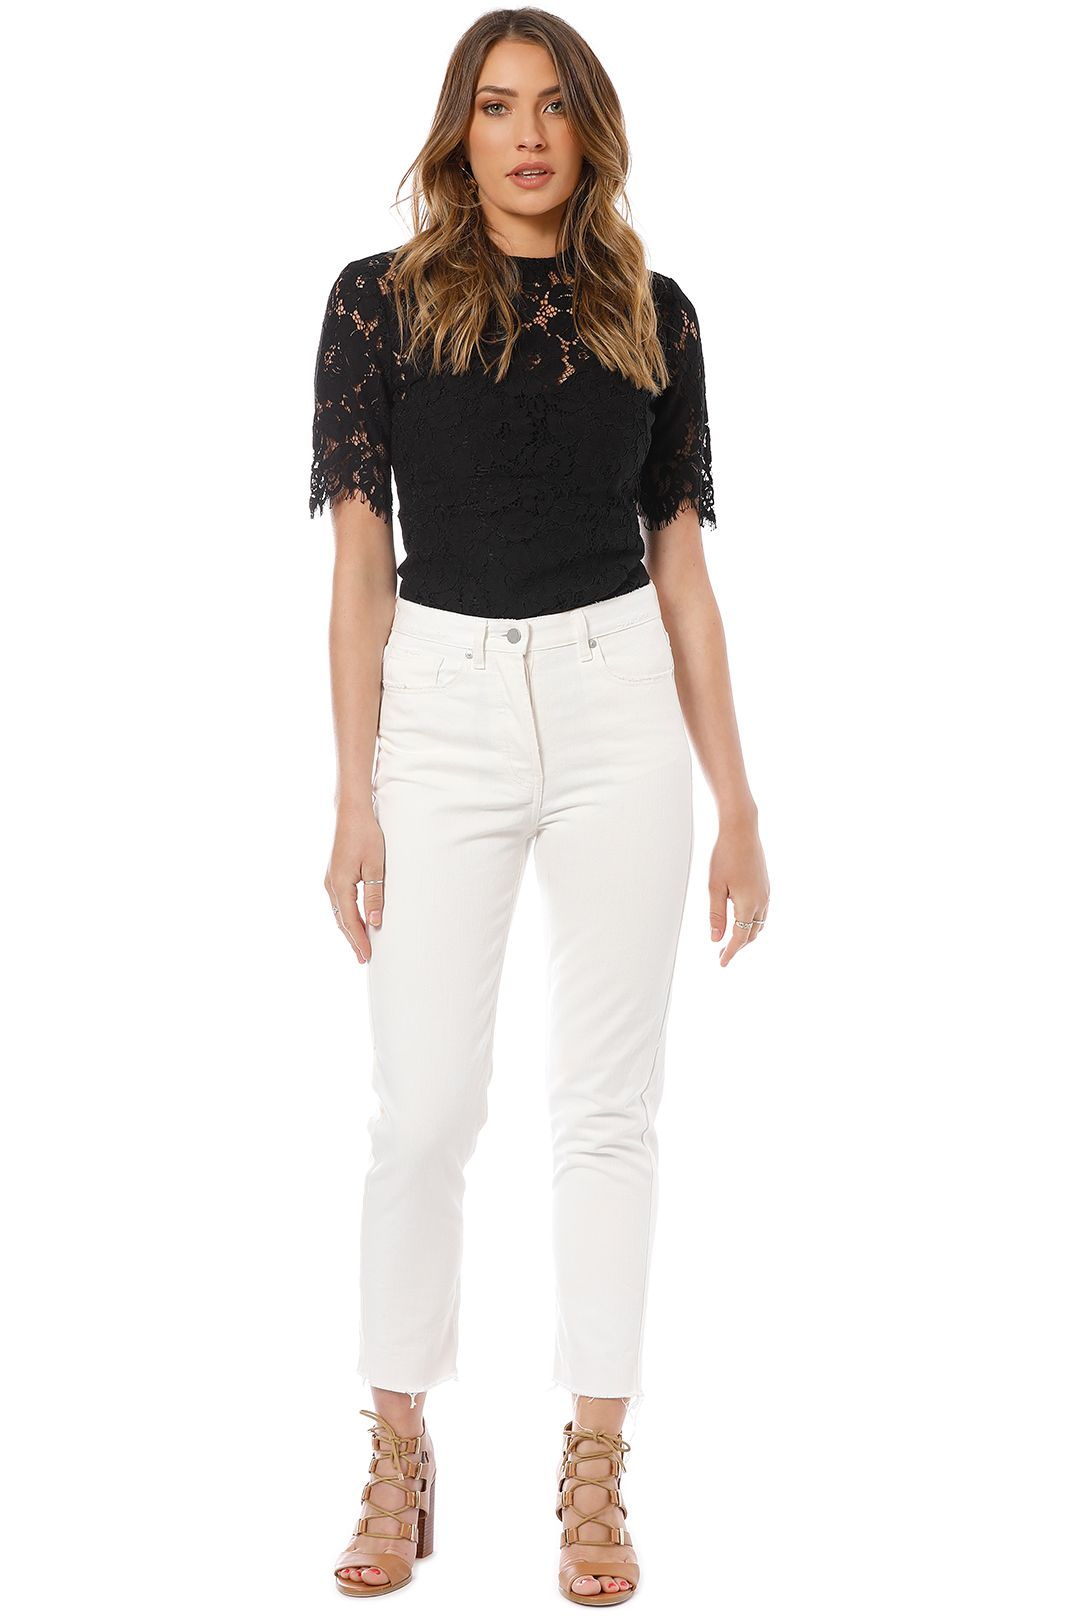 Camilla and Marc - Margot Cropped Straight Leg Jeans - White - Front